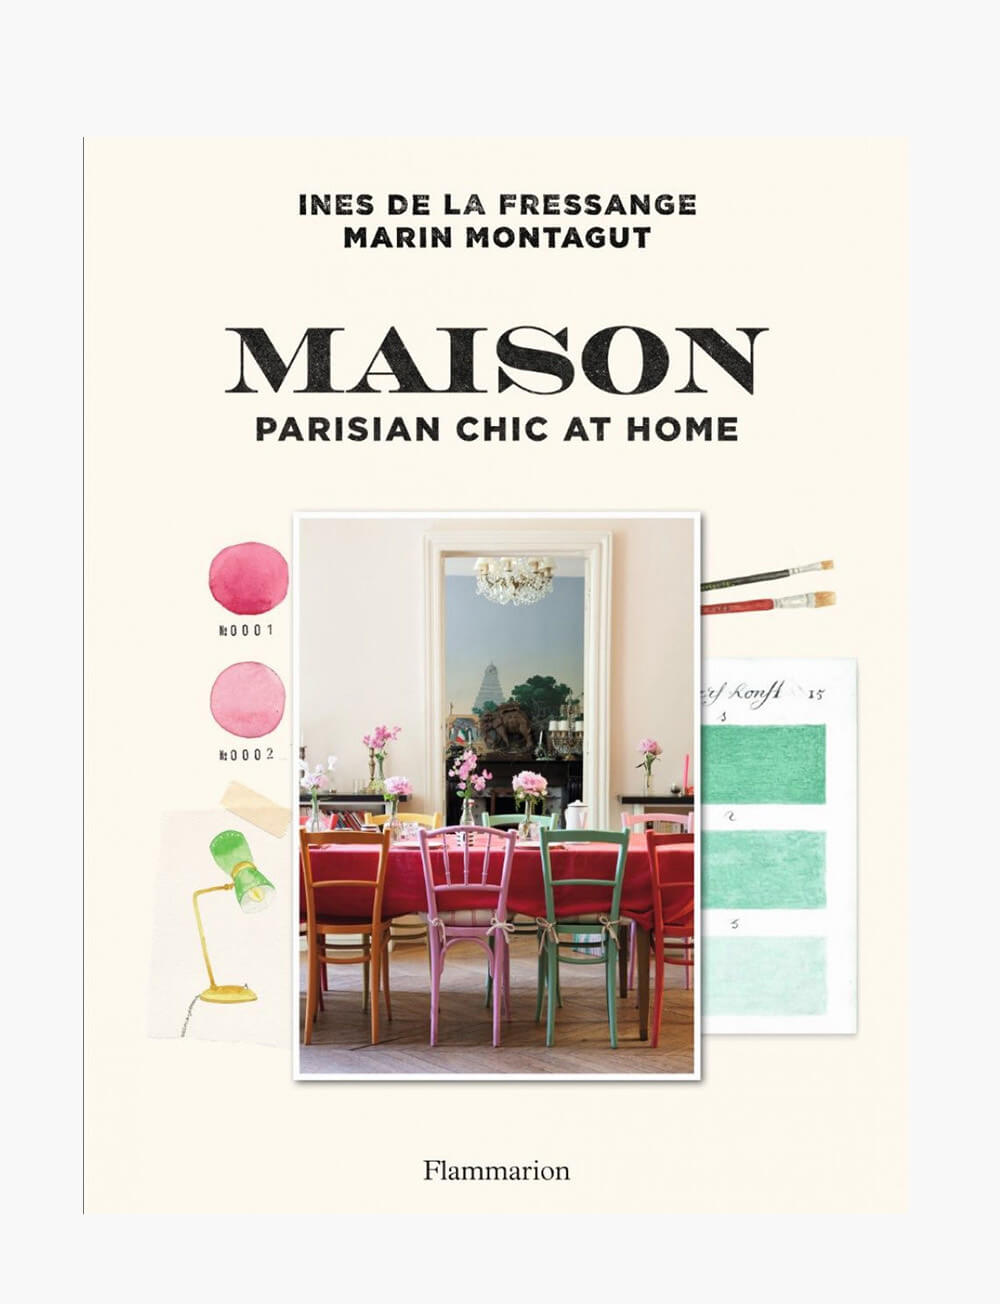 quot-maison-parisian-chic-at-home-quot-book-in-english